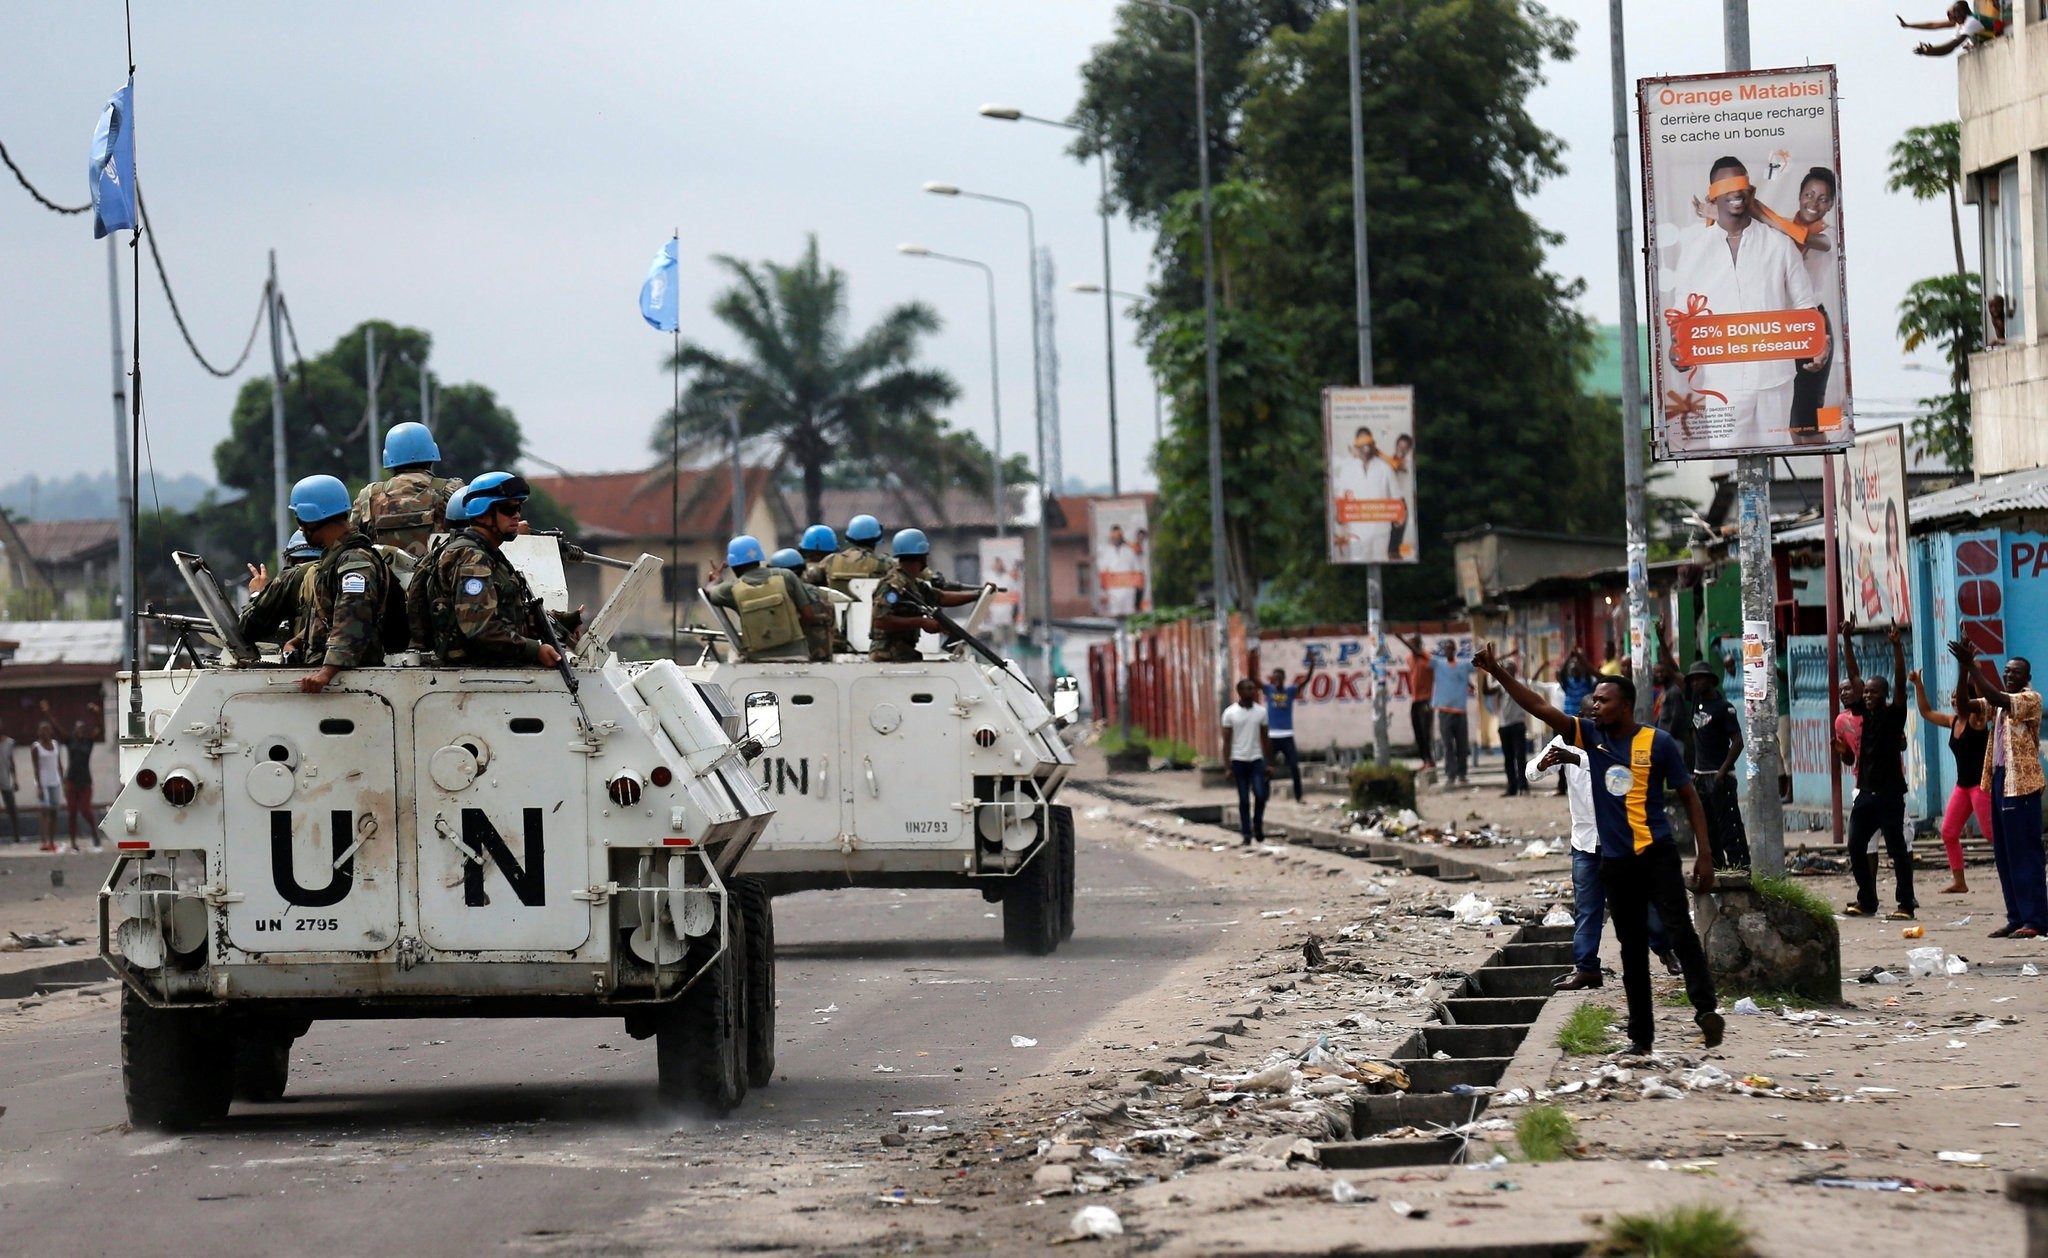 Peacekeepers serving in the United Nations Organization Stabilization Mission in the Democratic Republic of the Congo (MONUSCO) patrol. (Reuters Photo)